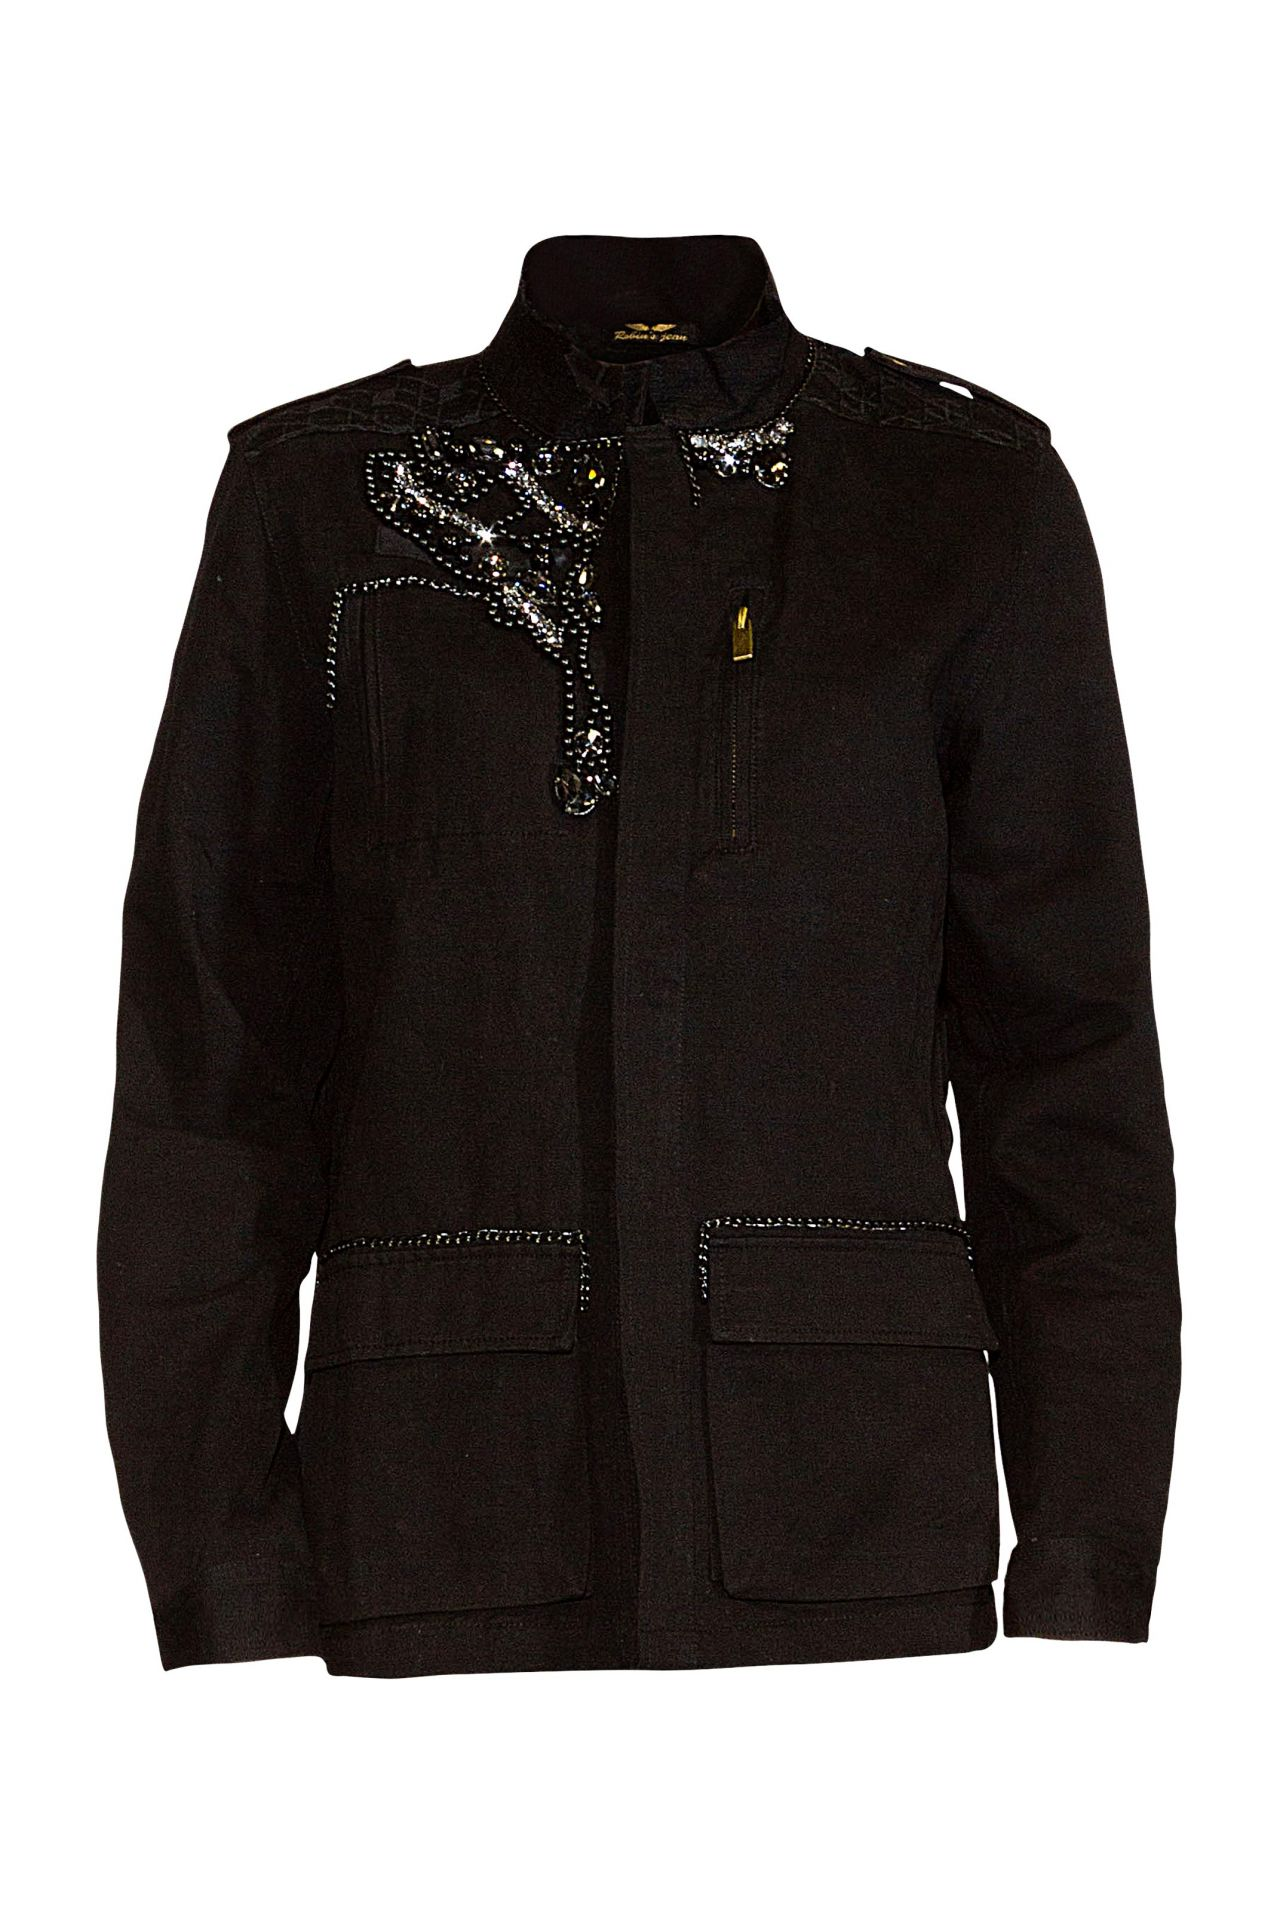 MILITARY JACKET WITH CRYSTALS IN BLACK